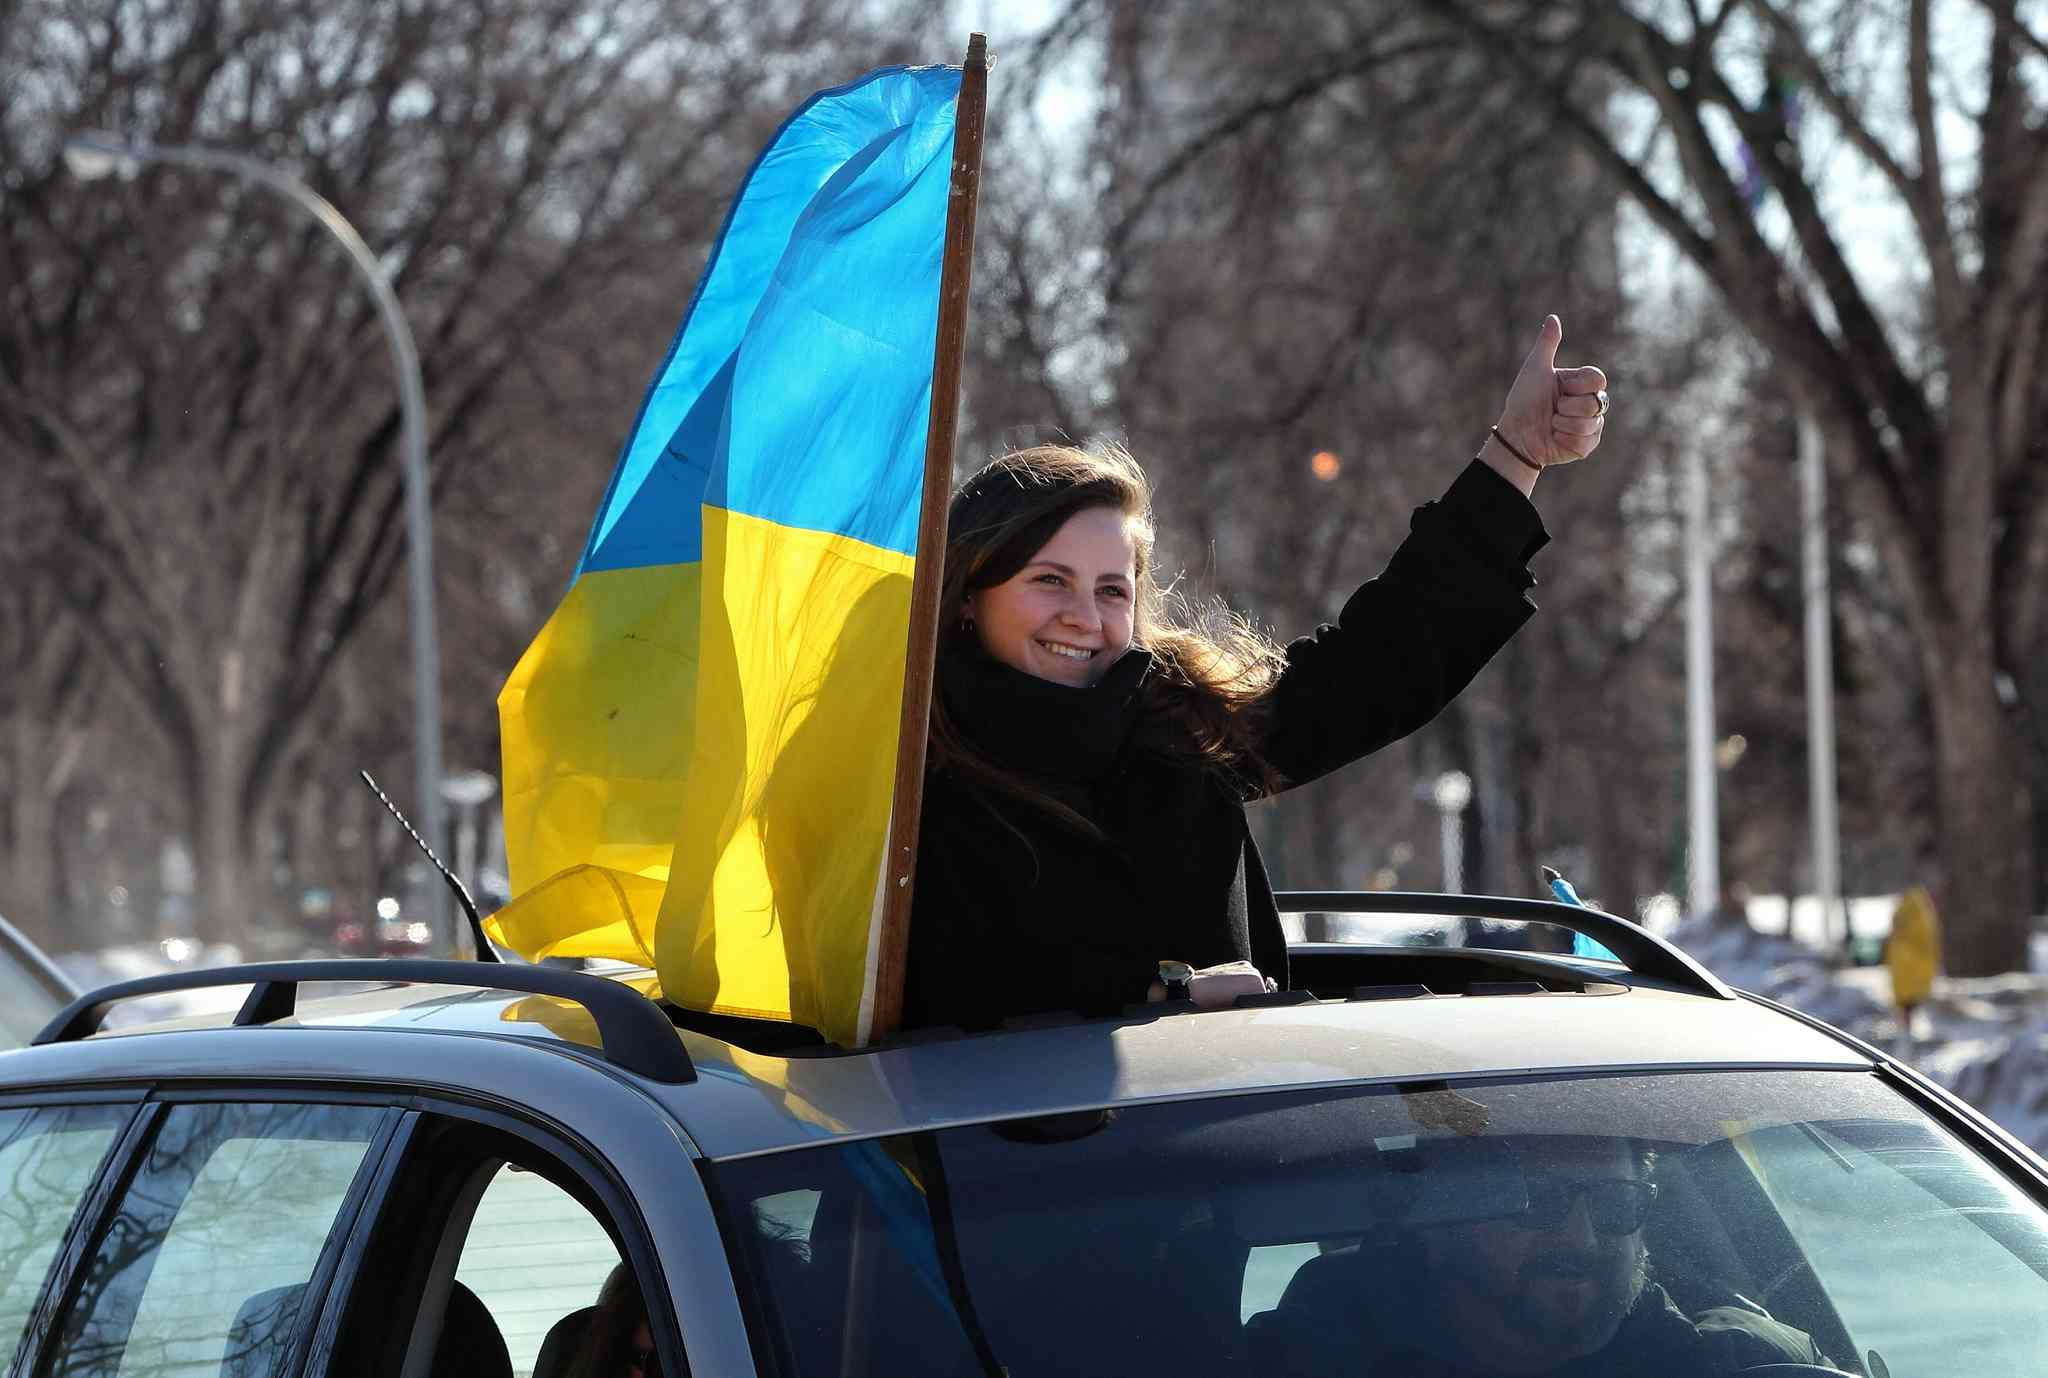 Daria Lytwyn gives the thumbs-up from the sun roof of a car during a car rally held by the Ukrainian Canadian Congress — Manitoba Provincial Council to raise awareness about the situation in Ukraine and showing solidarity with the Ukrainian people.